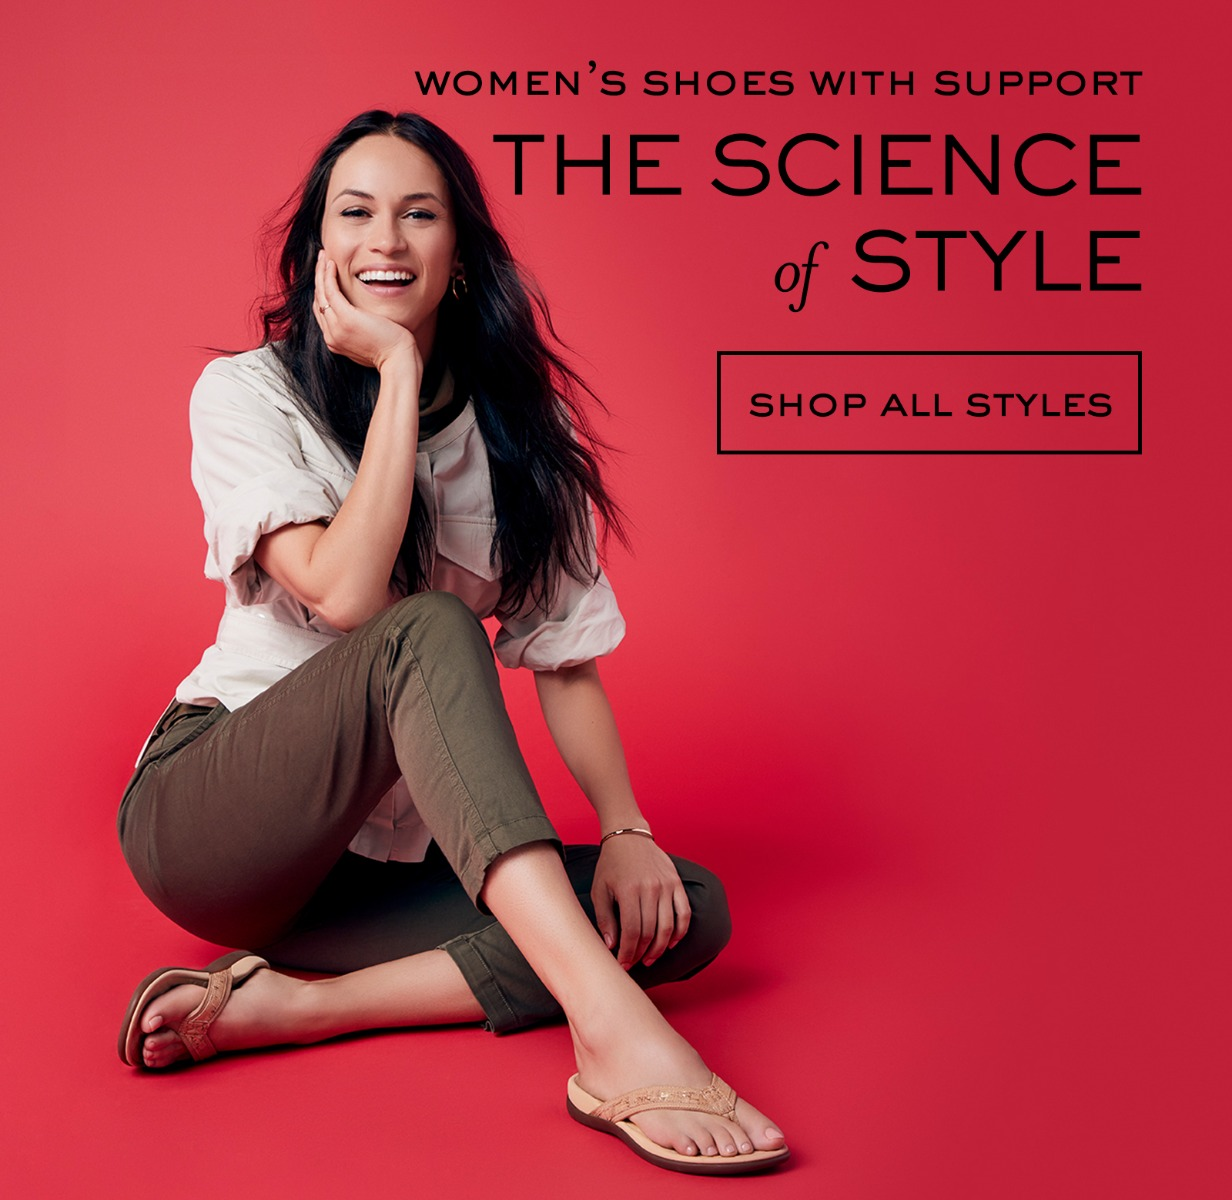 Vionic Women's shoes with support